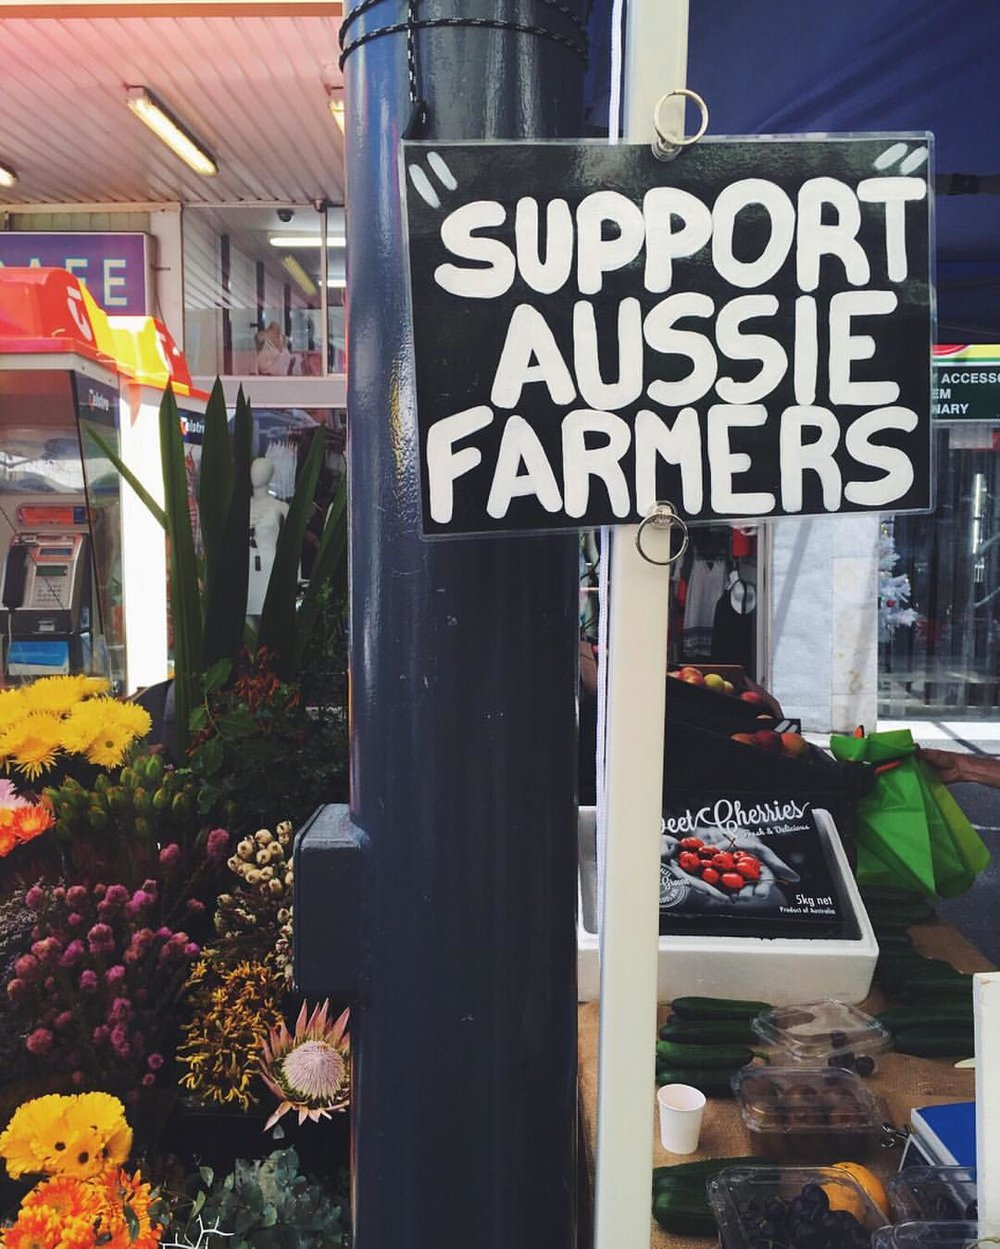 Sydney's farmers markets allow you to support local and really connect with the people who grow your food.